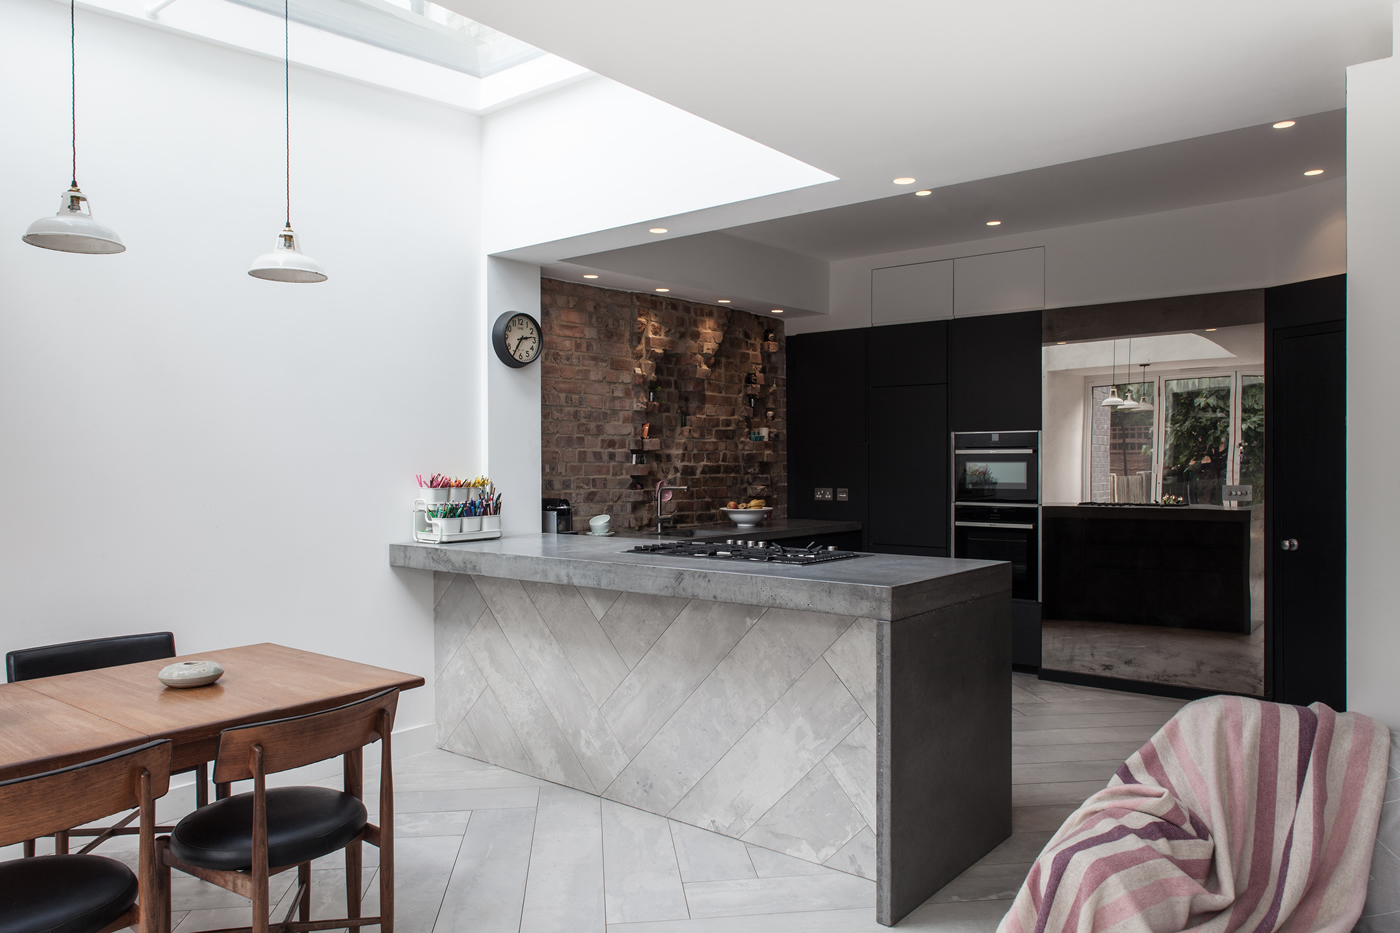 Harcourt Road West – Kitchen / diner extension